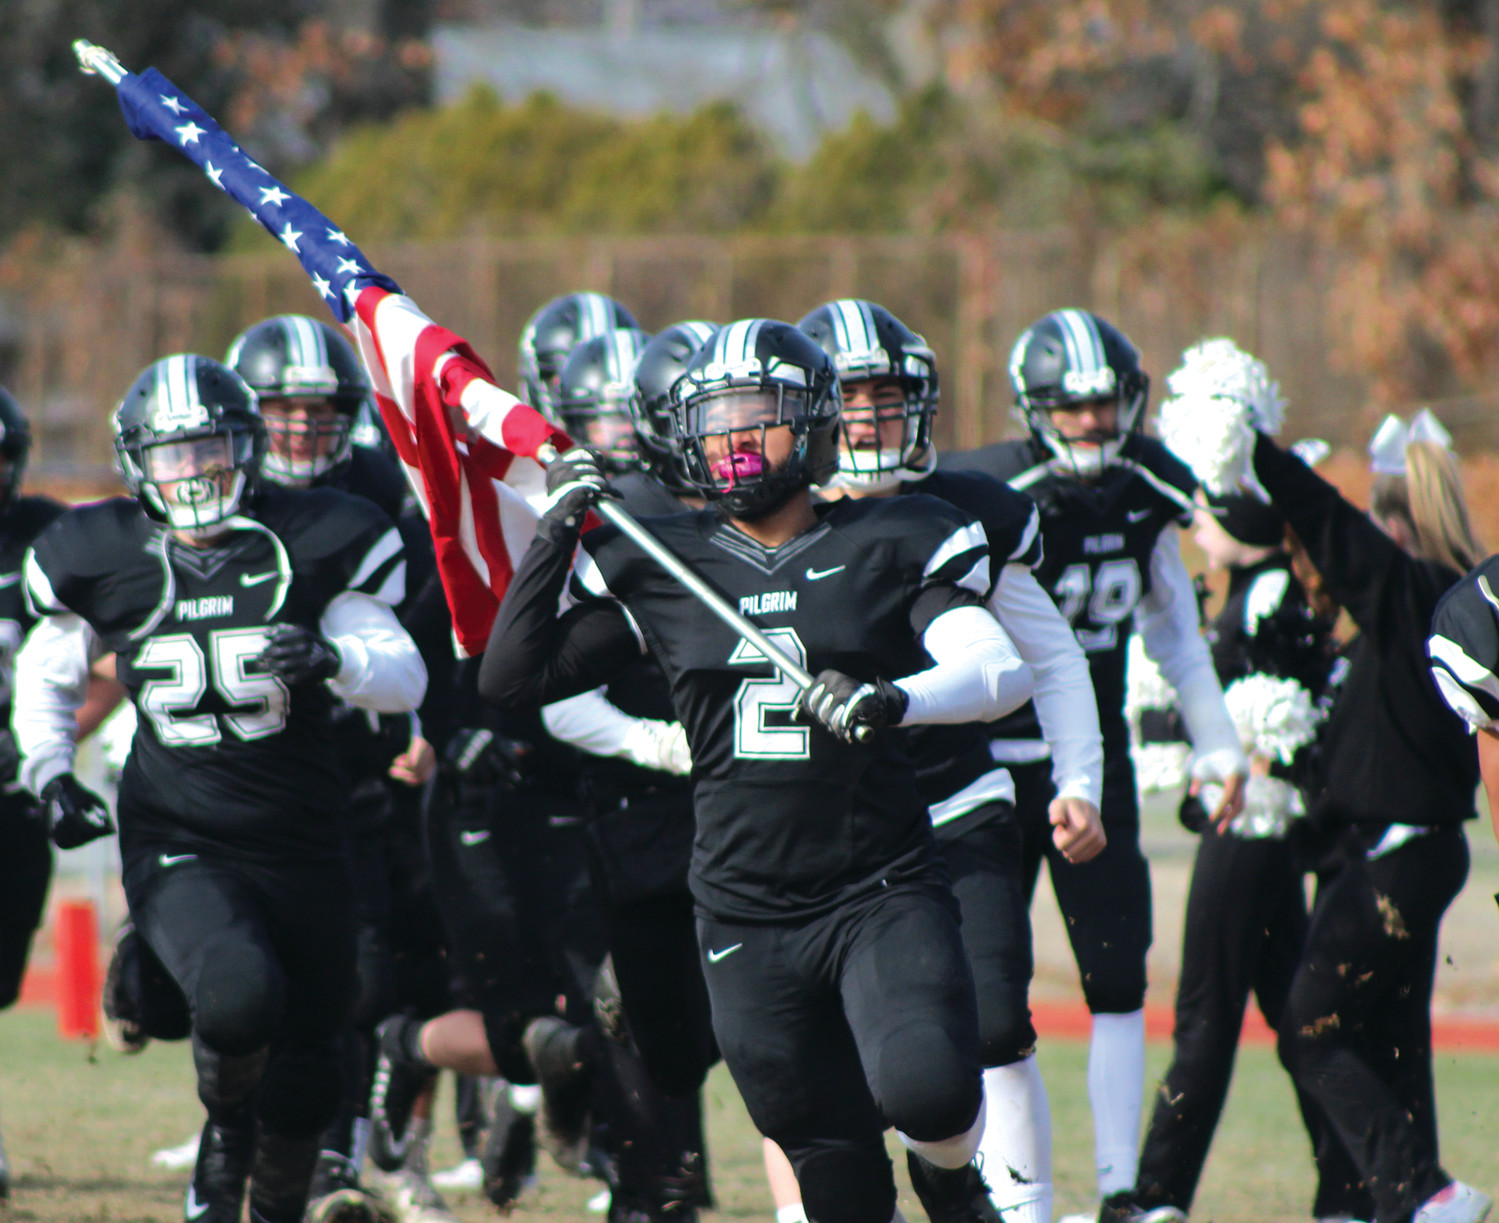 GRAND ENTERANCE: Pilgrim's Mark Brown (2) leads the team to the field prior to kickoff.